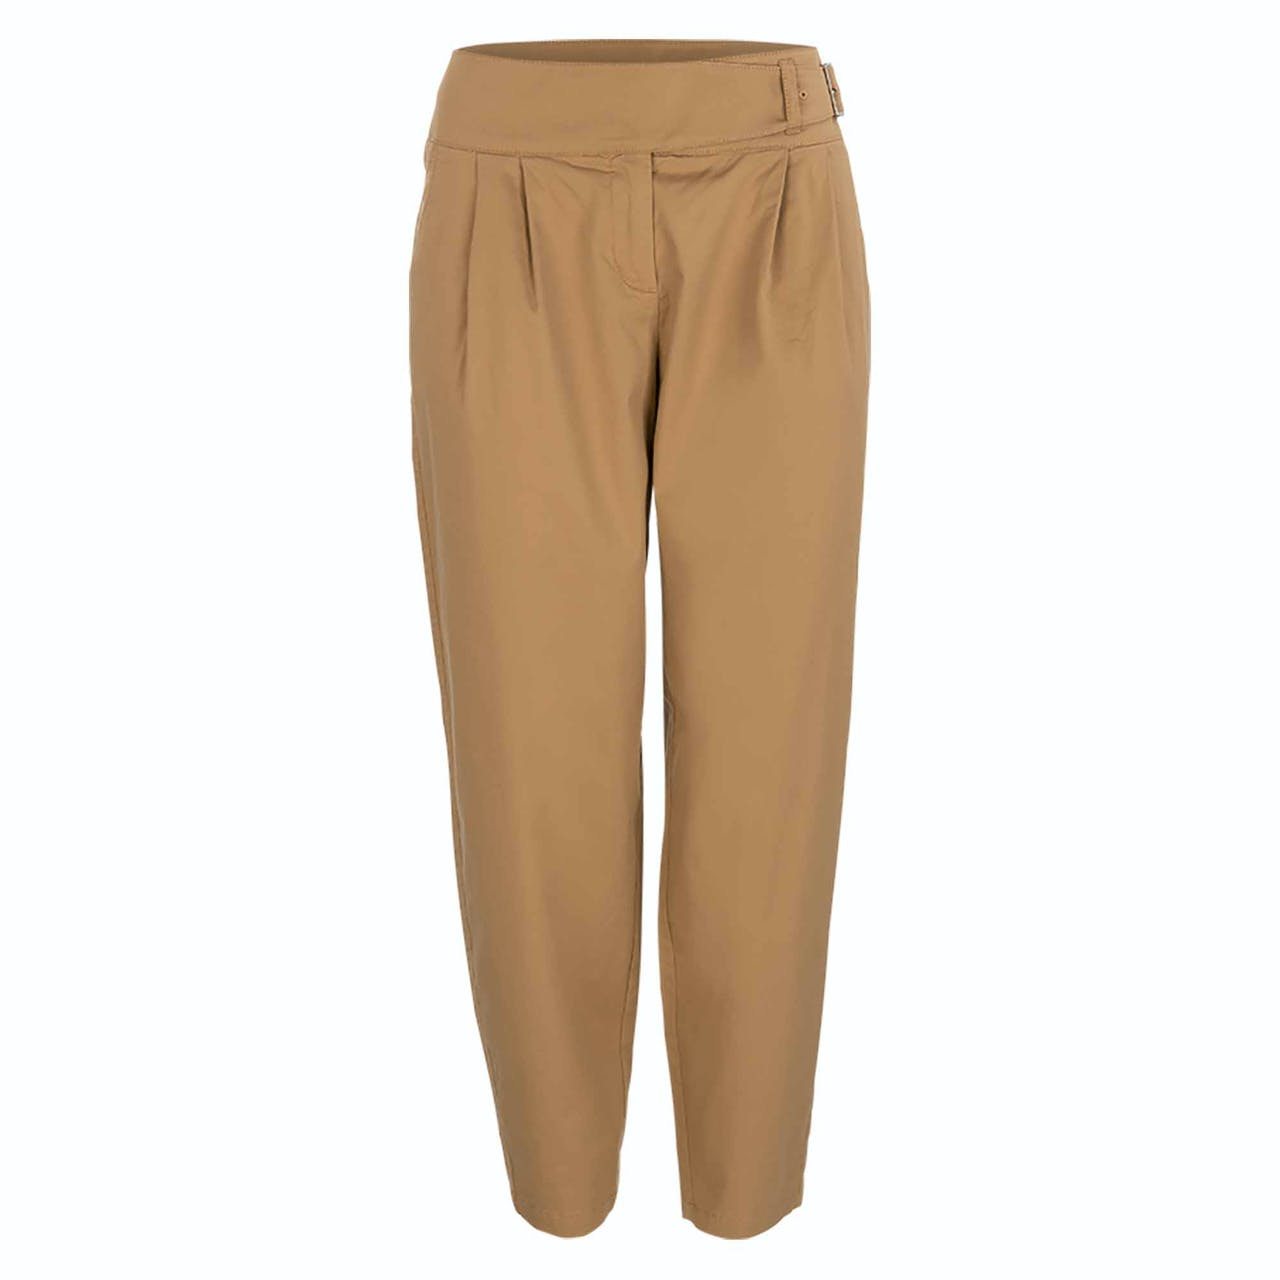 Hose - Relaxed Fit - Unifarben